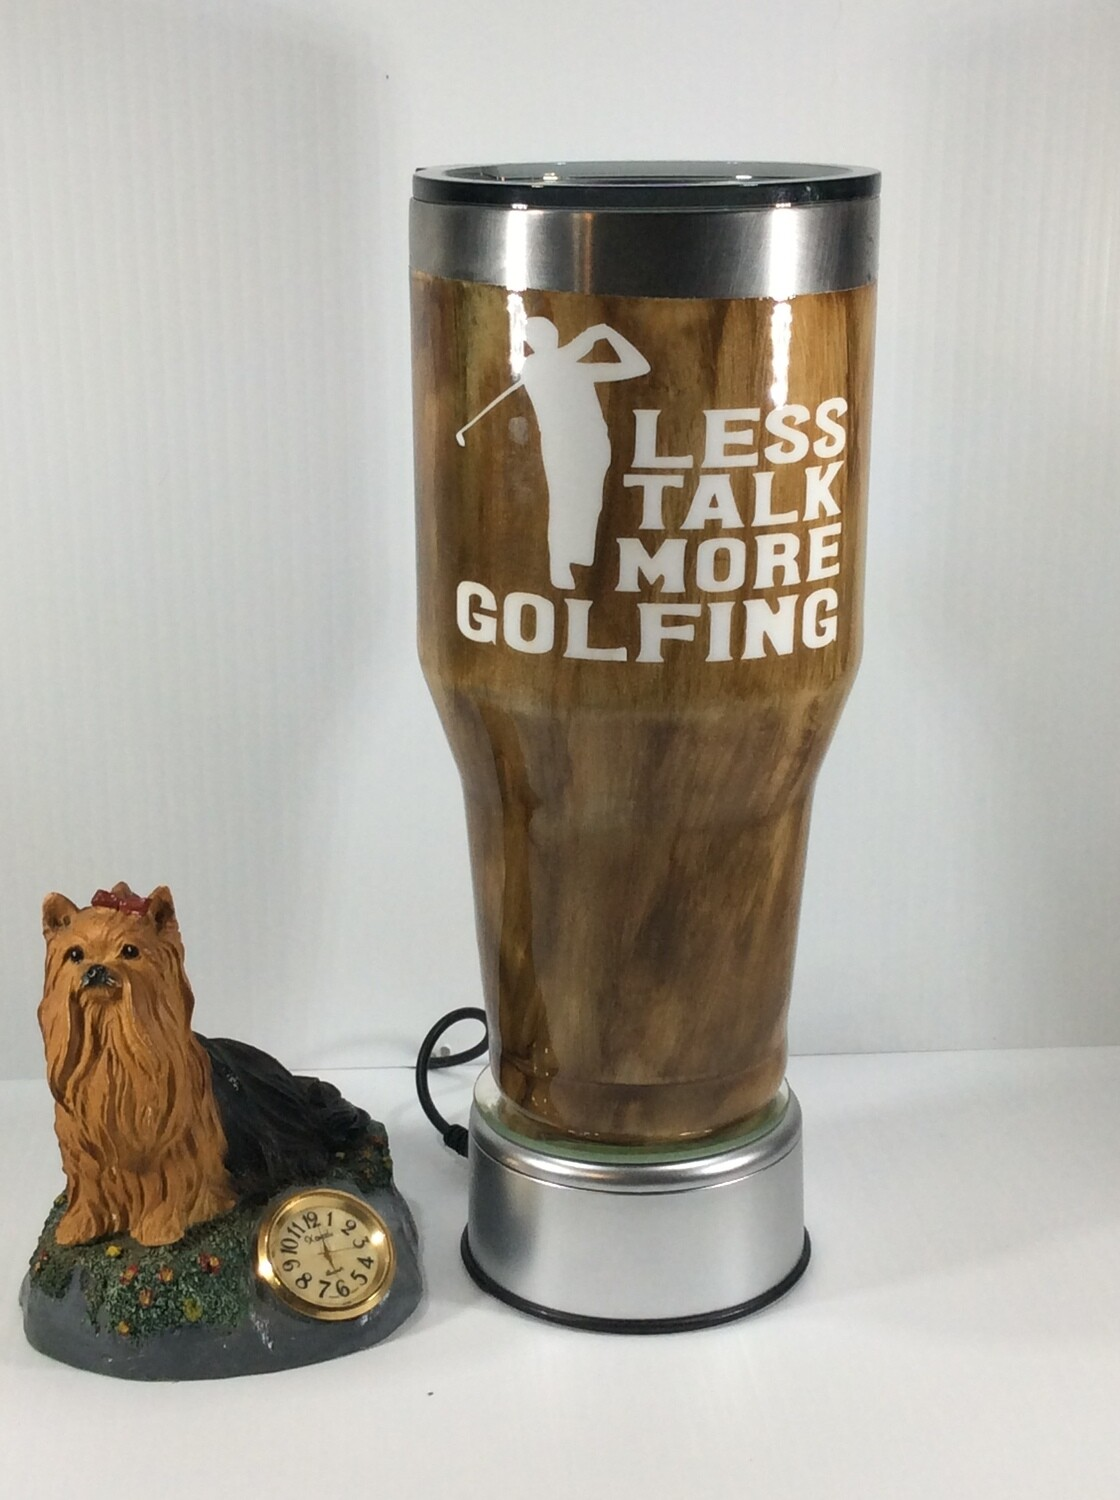 Less talking more Golfing